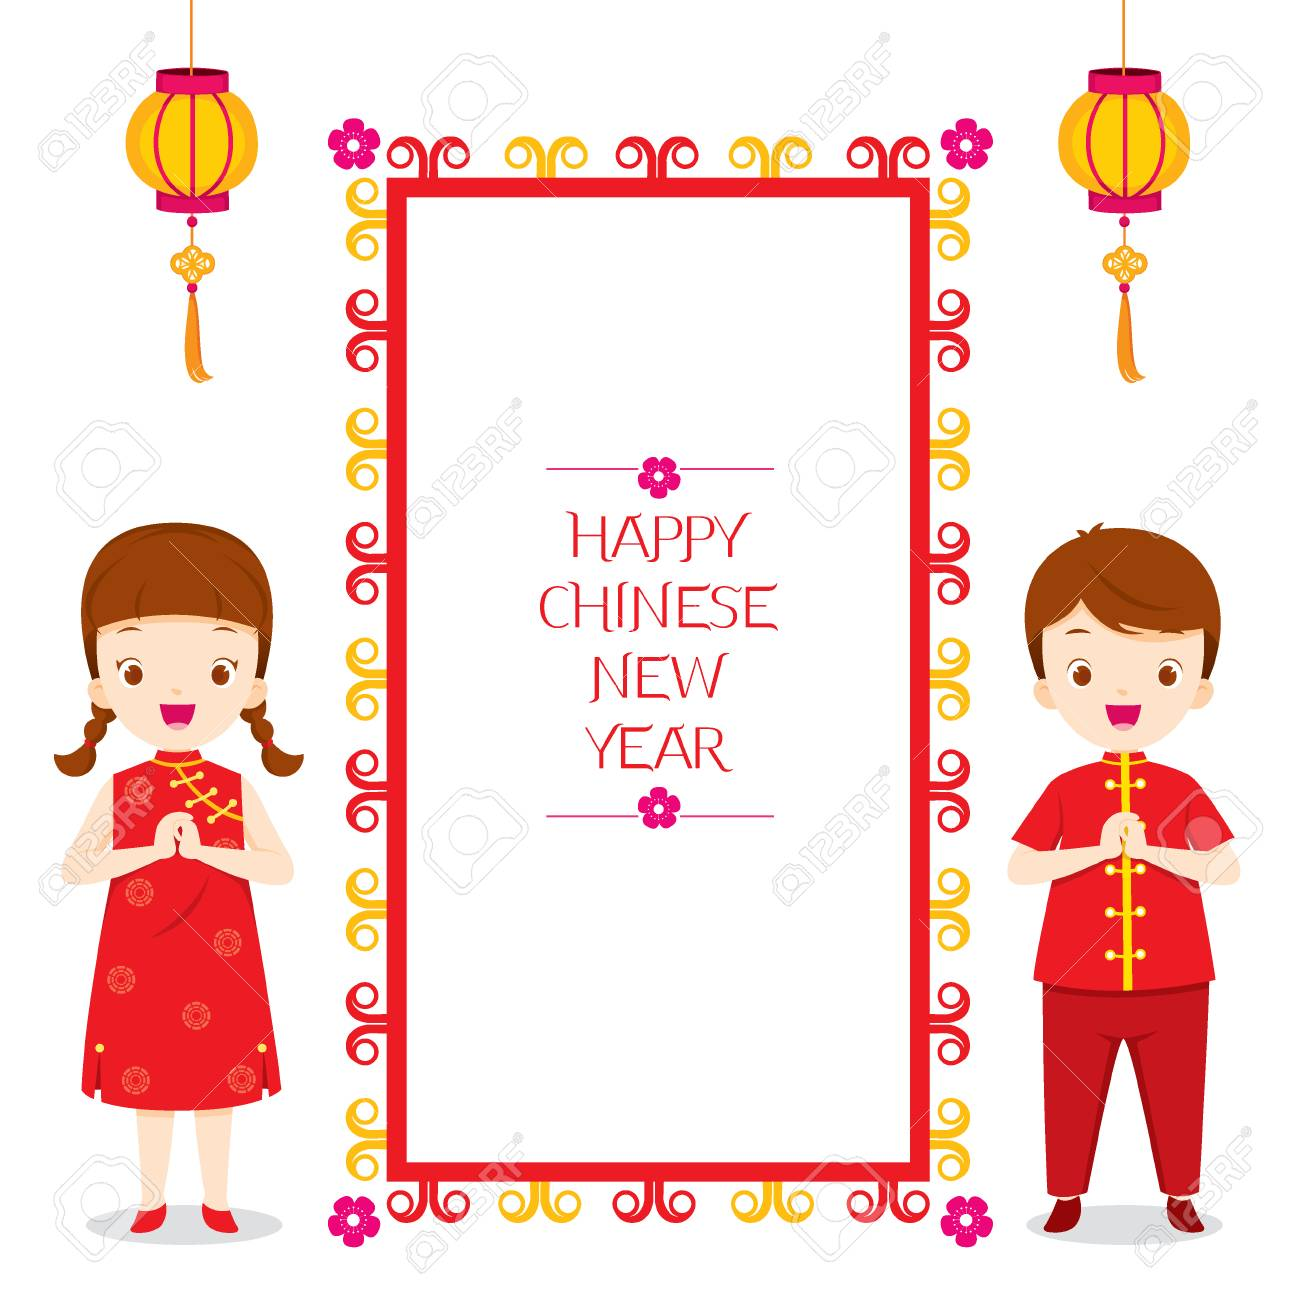 happy chinese new year frame with children traditional celebration china border stock vector